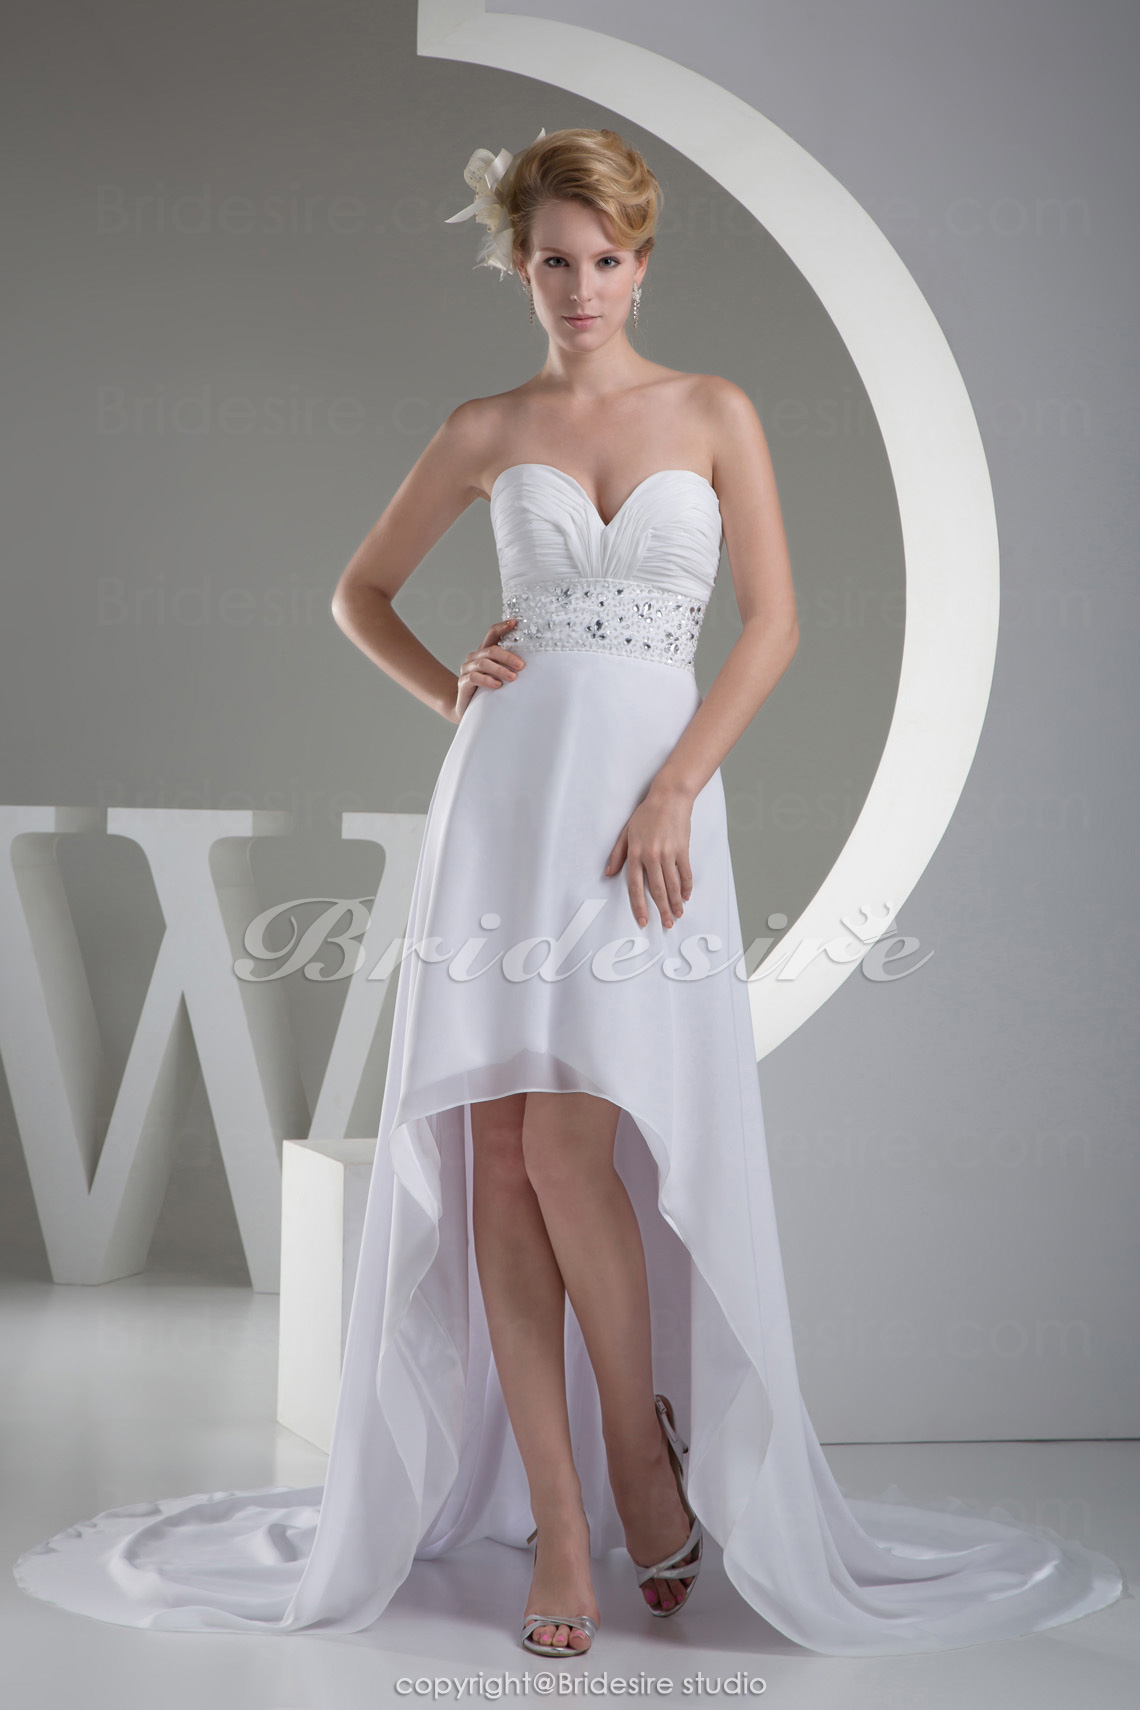 A-line Sweetheart Asymmetrical Court Train Sleeveless Chiffon Wedding Dress